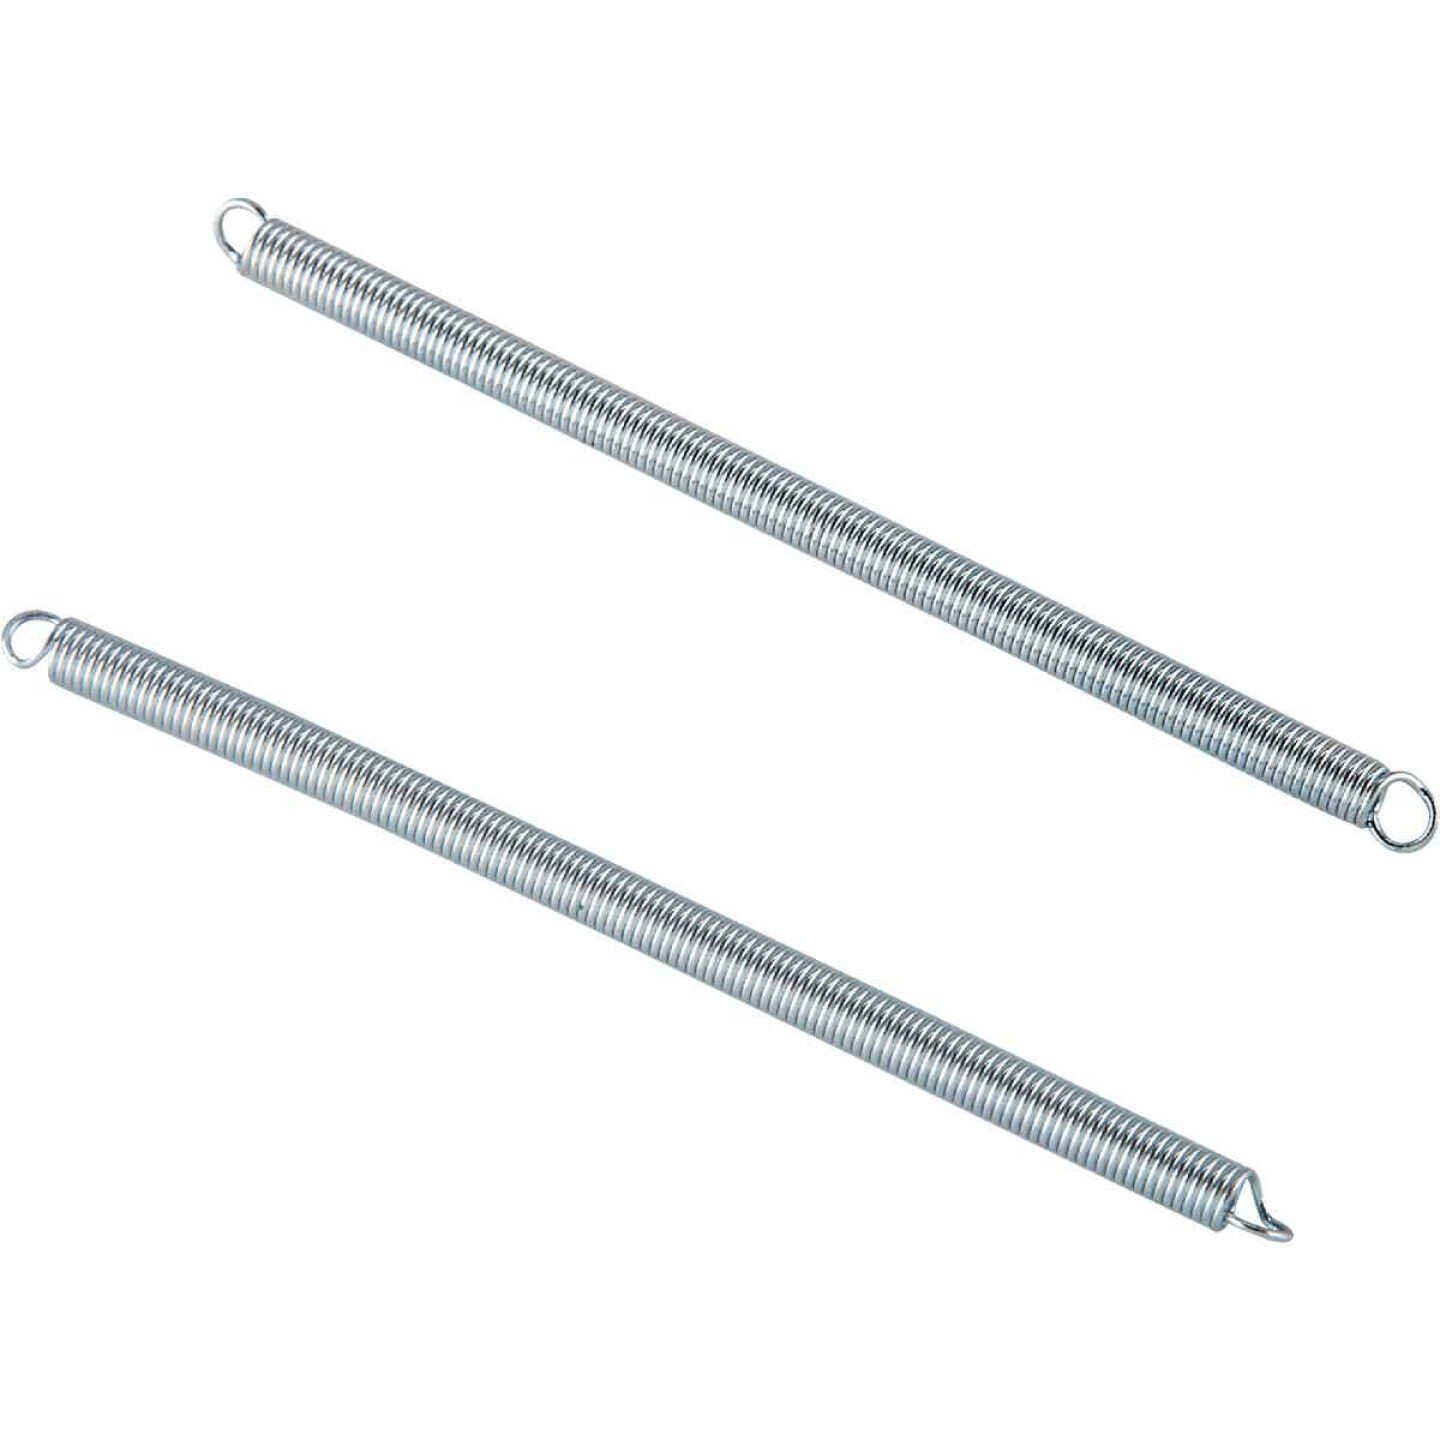 Century Spring 7 In. x 1-1/16 In. Extension Spring (1 Count) Image 1